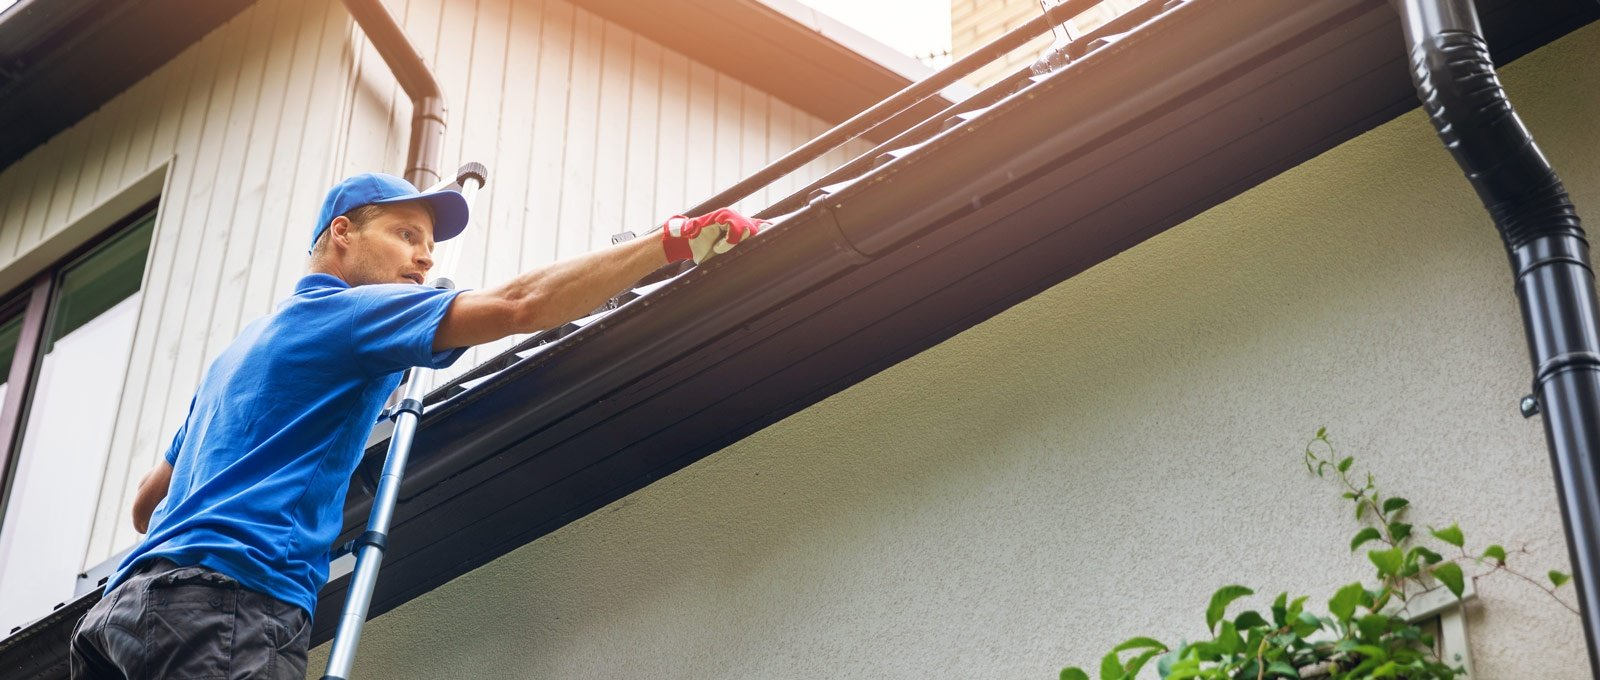 Ready to Start Your Gutter Repair Project with Brothers? ~ Request A Consultation